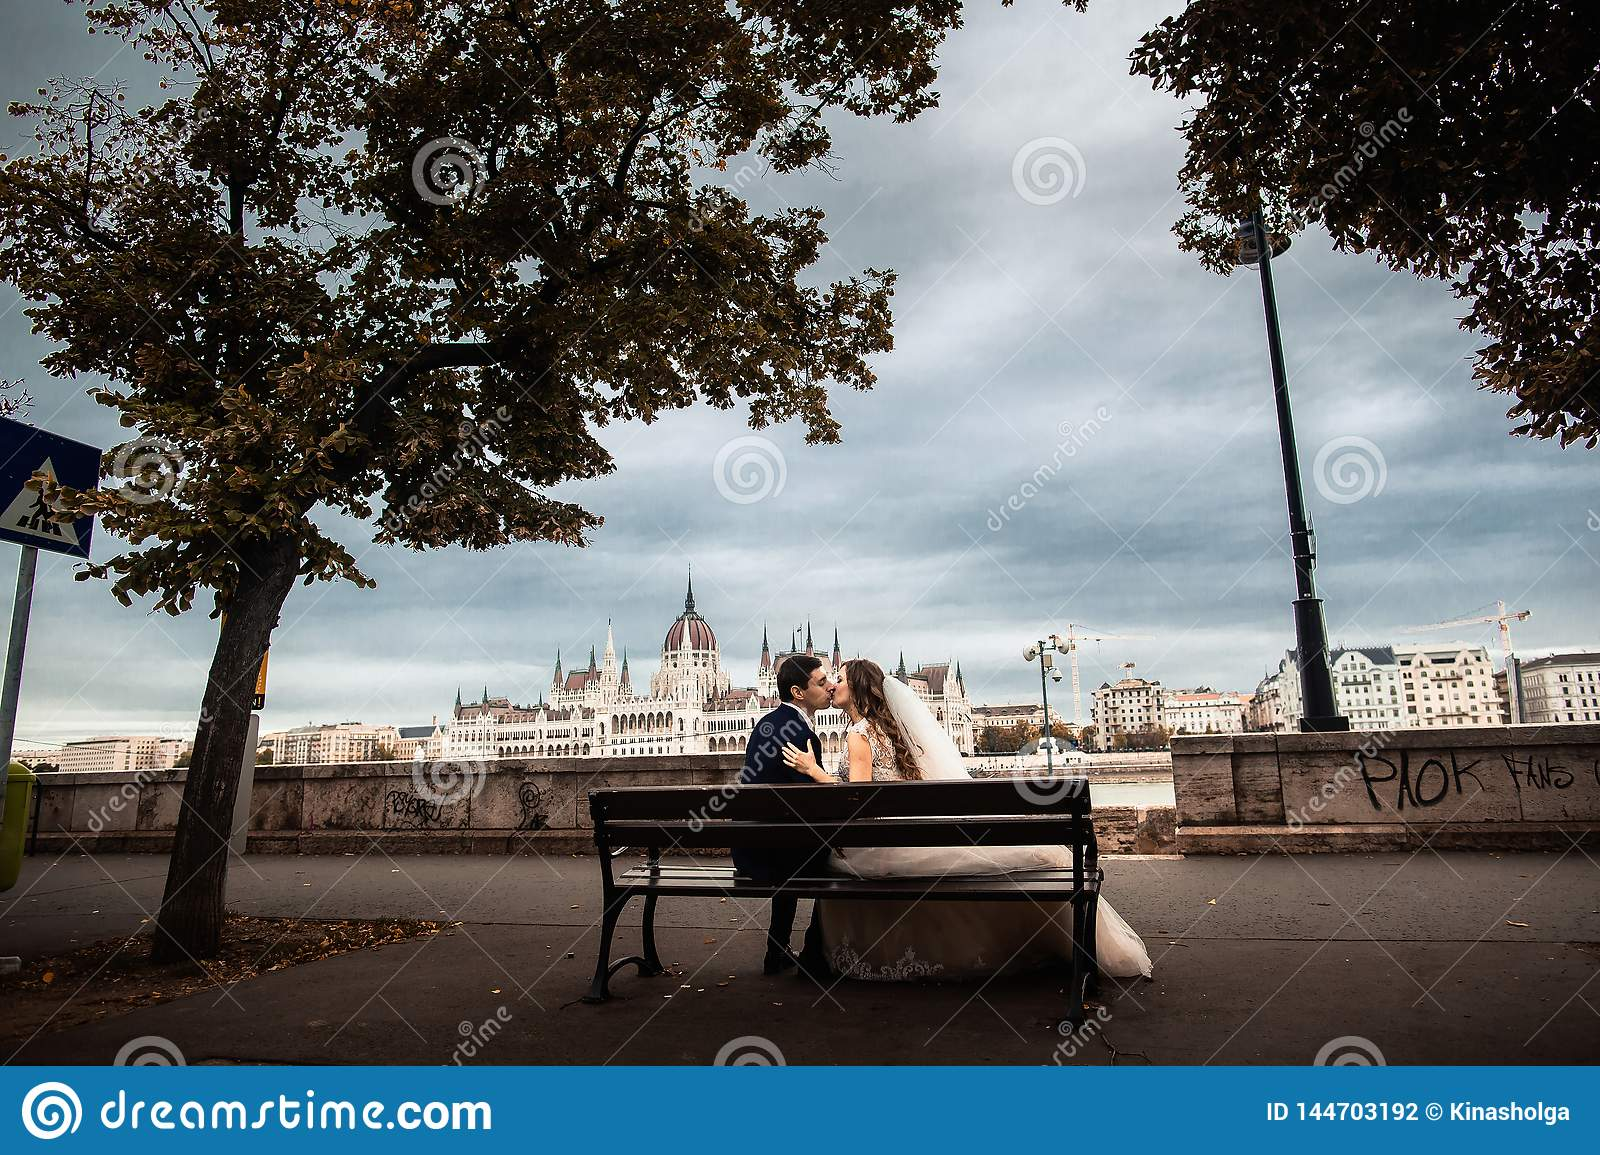 The bride and groom sitting on the bench near the river in the old city. Weeding in Budapest